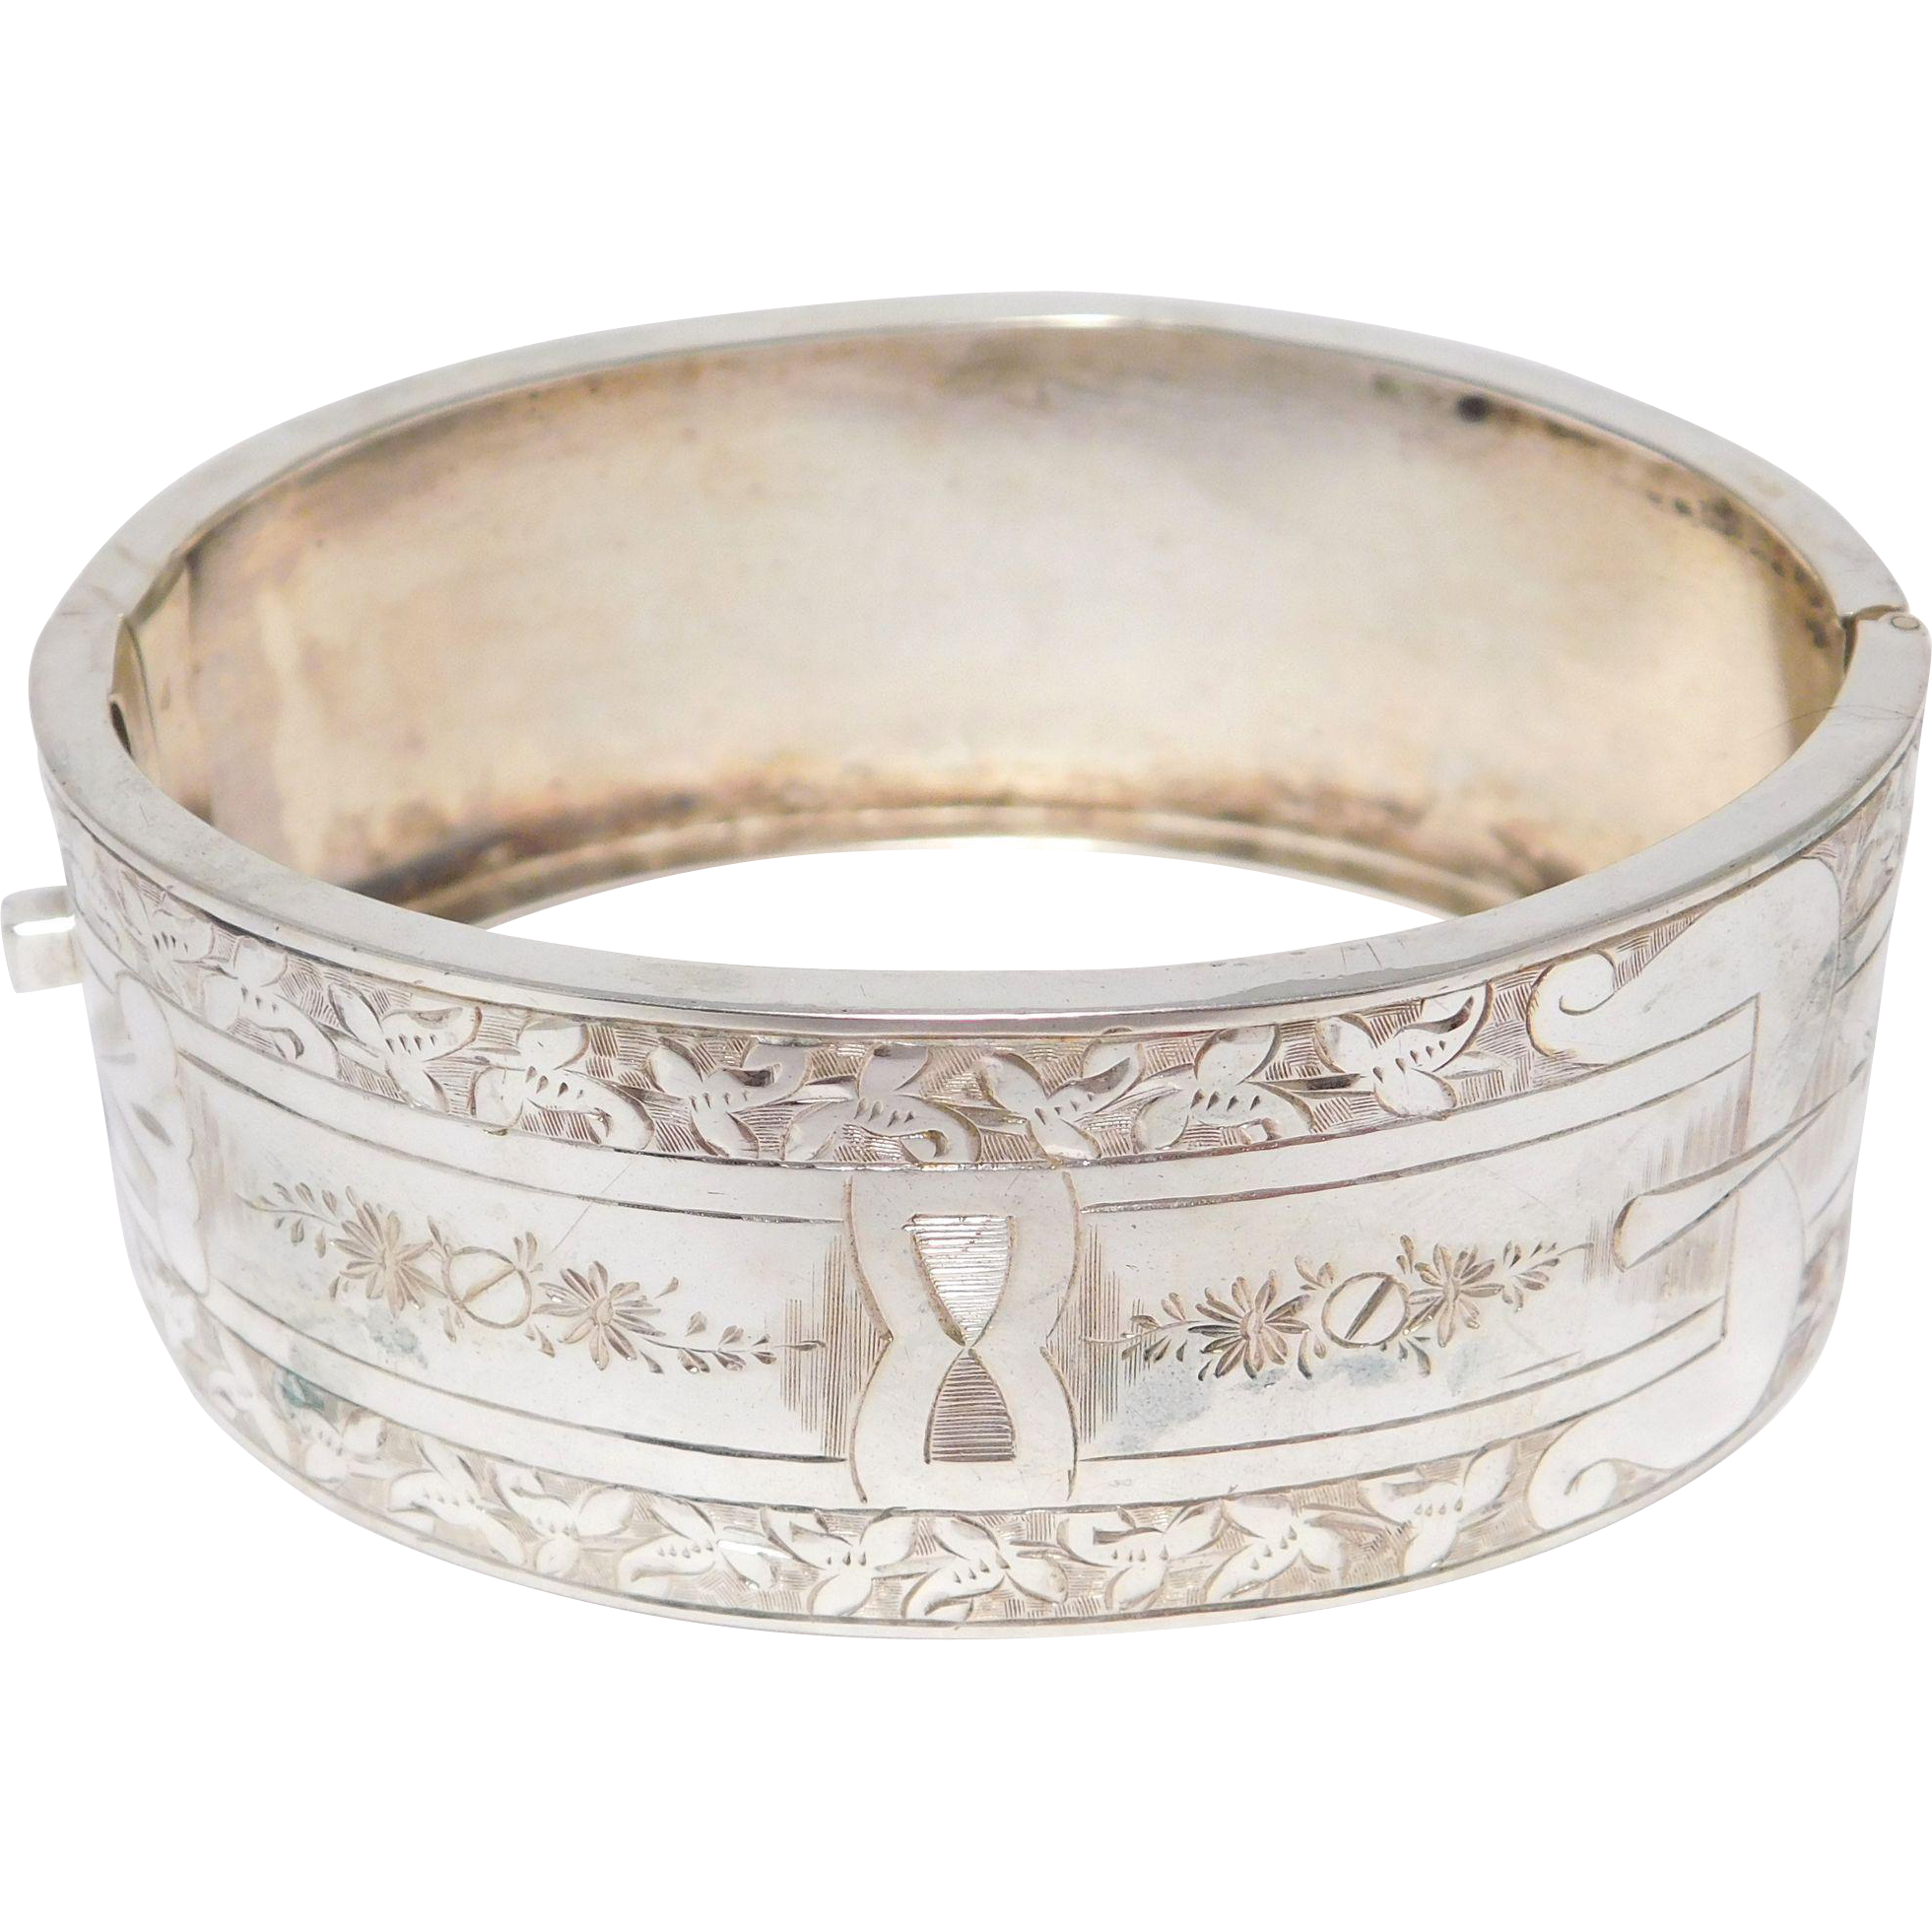 Victorian Sterling Engraved Wide Bangle Bracelet